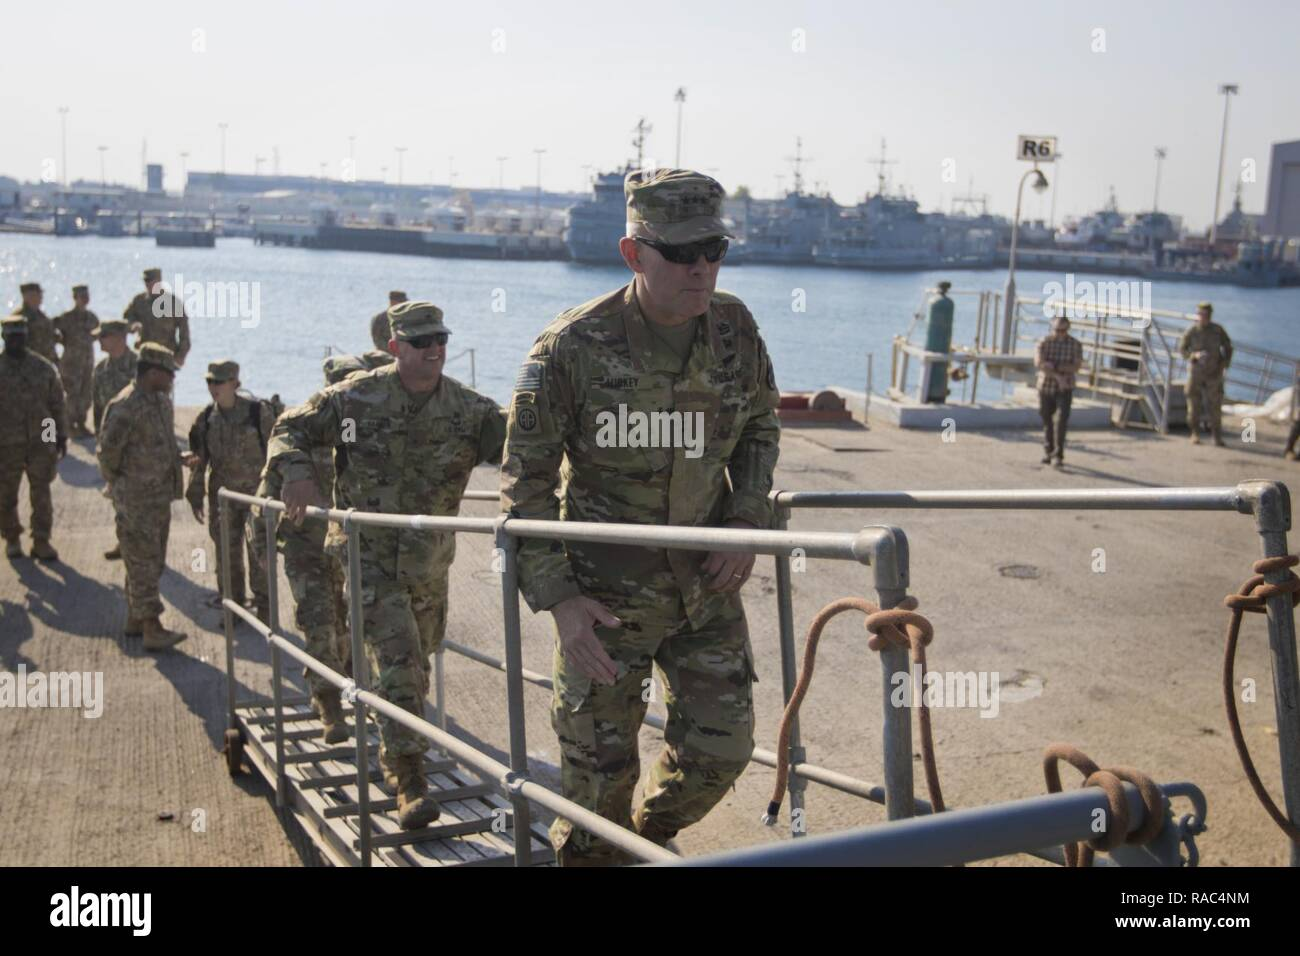 """U.S. Army Reserve Commanding General Lt. Gen. Charles D. Luckey steps aboard the LCU-2002 """"Kennesaw Mountain"""" during a tour of the Kuwait Naval Base and its capabilities in Kuwait, Jan. 10, 2017. - Stock Image"""